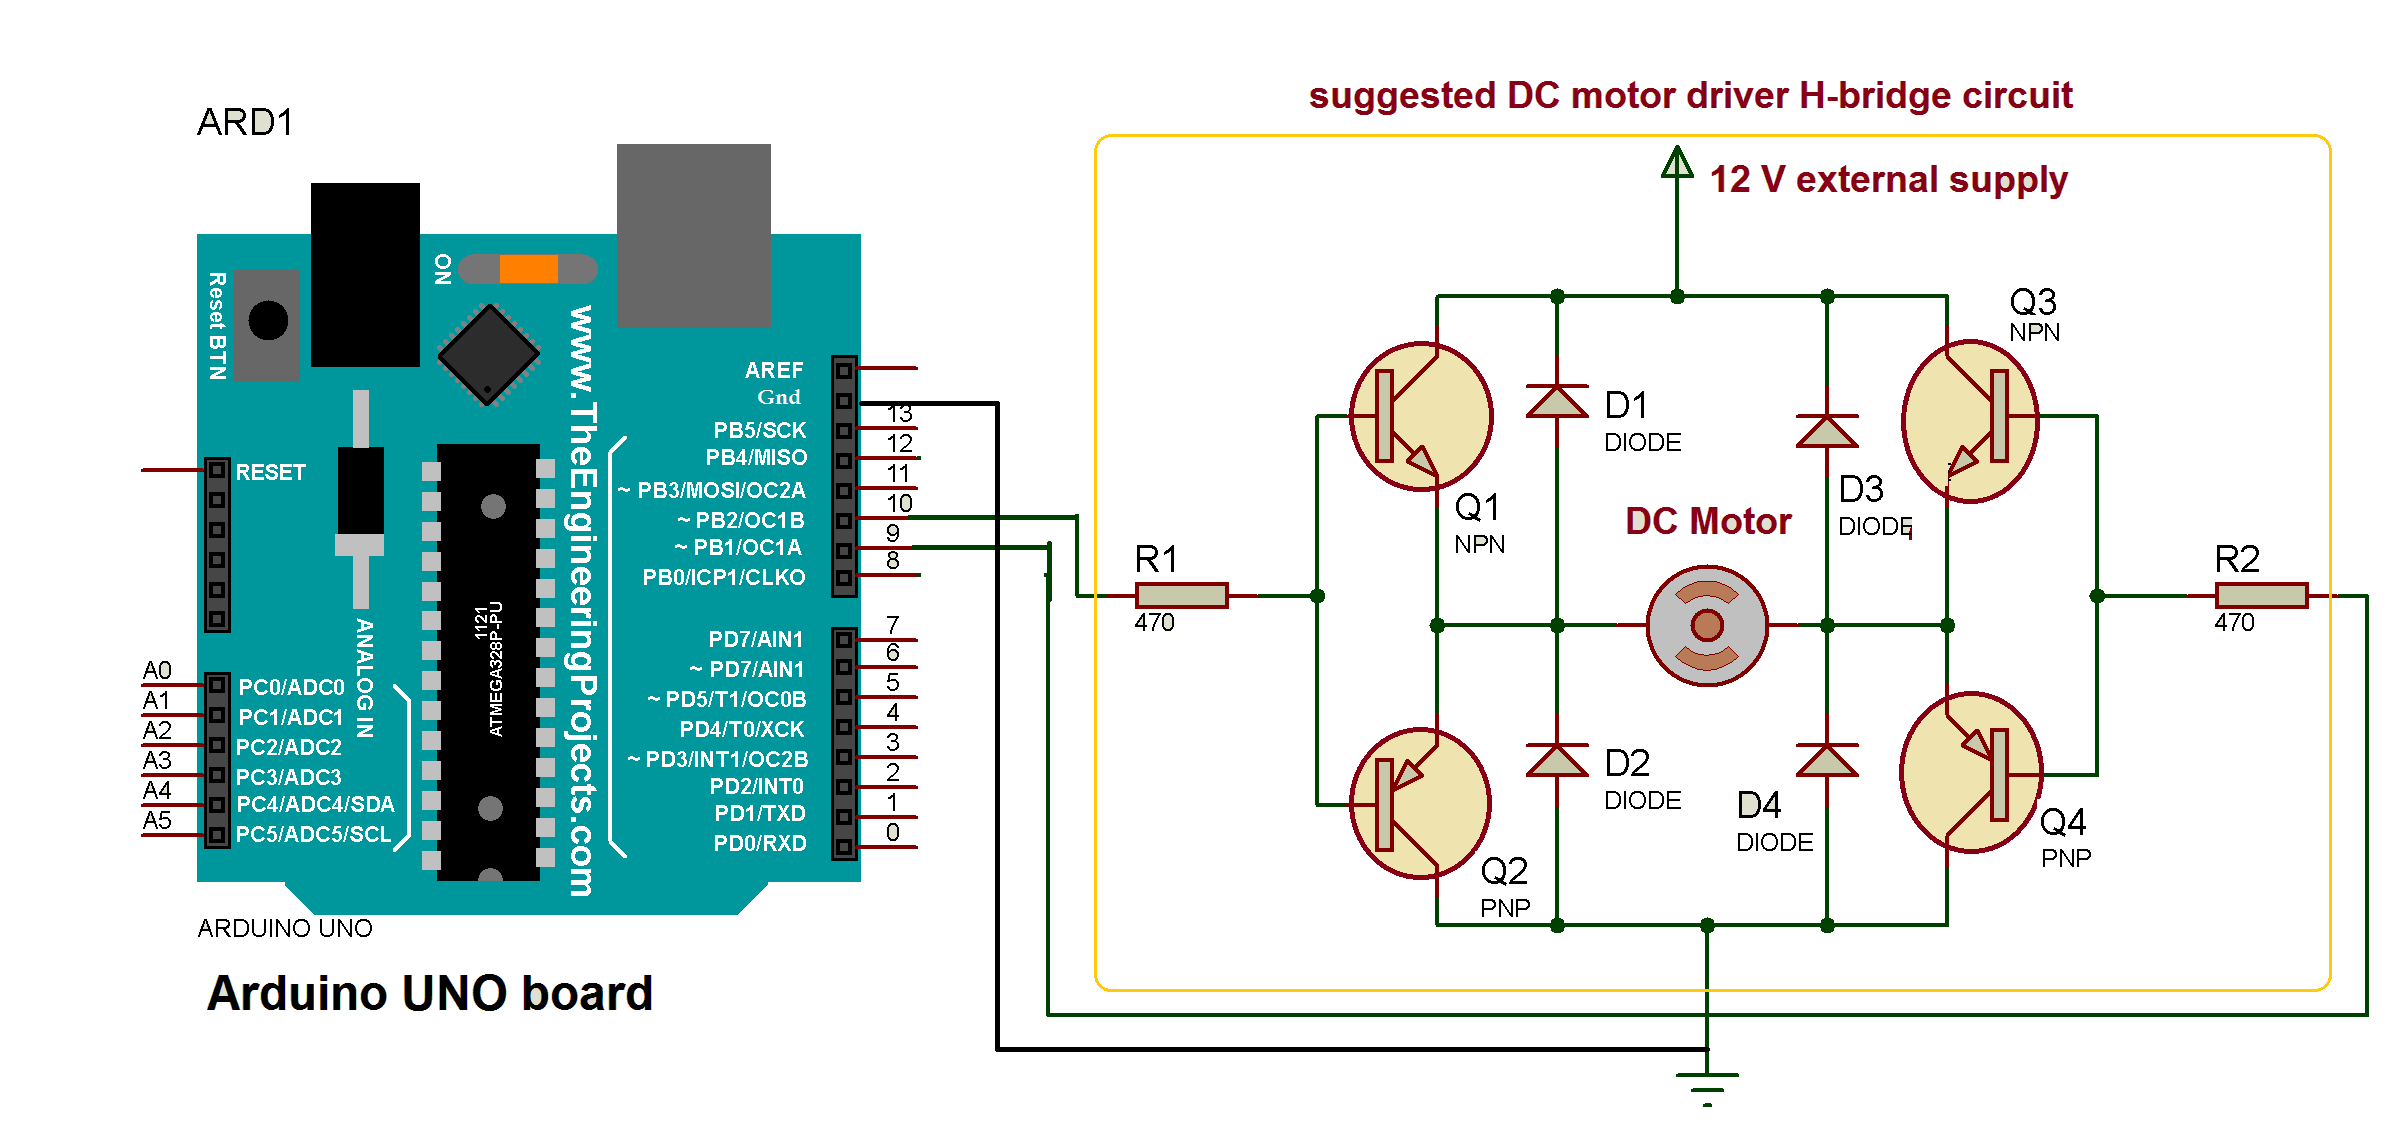 Motor Schematic Diagram Also Dc Control Circuit On Controlling Library Arduino Uno And H Bridge Driver Used To